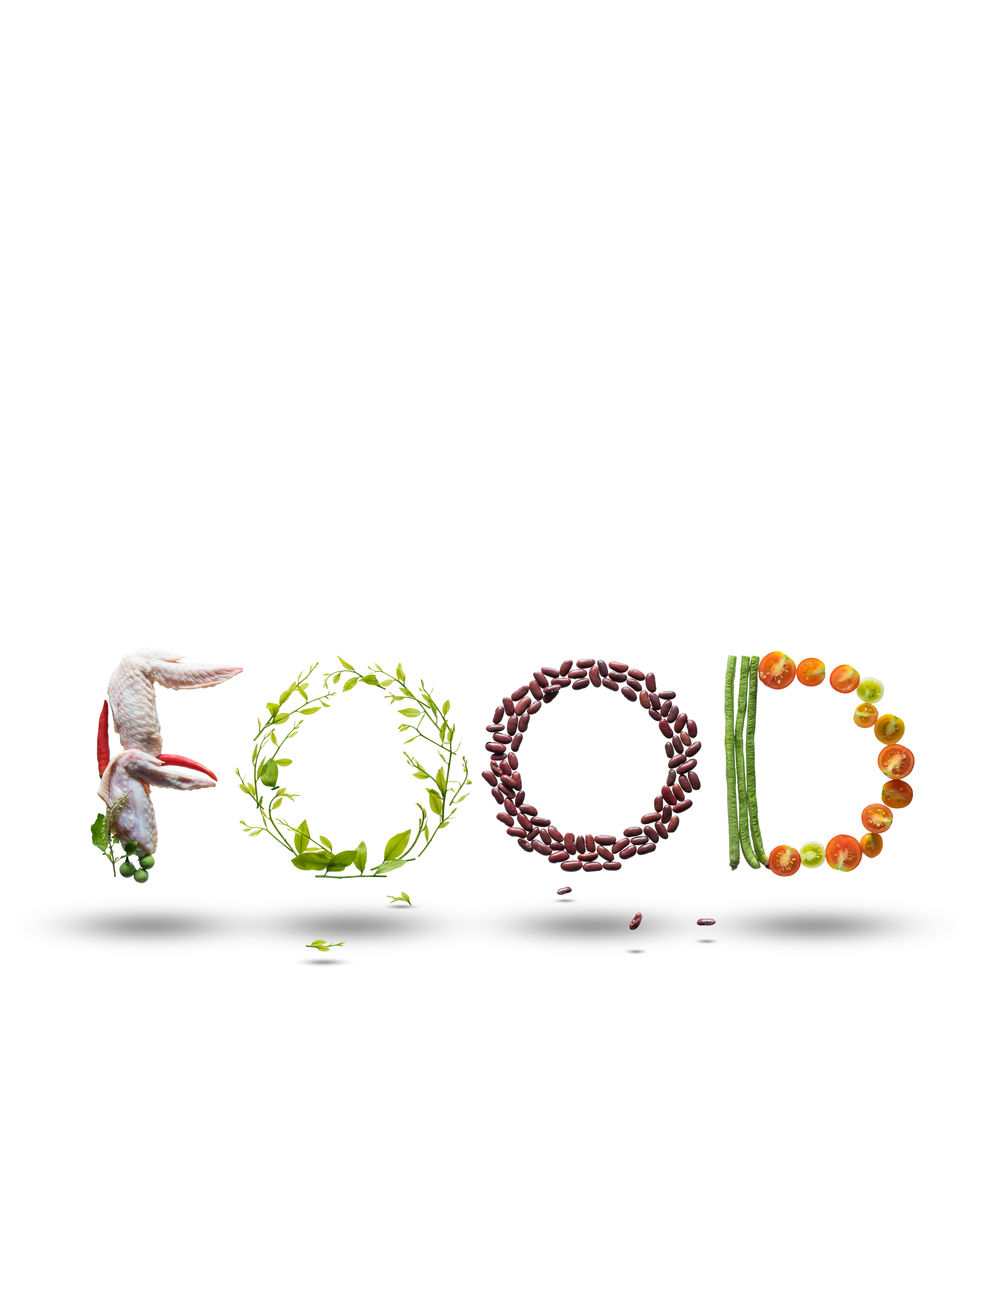 Font that made from food ingredients levitate in mid air. Basil Chicken Chilli Cuisine Food Fresh Healthy Eating Ingredients Levitate Melientha Suavis Red Kidney Bean Tomato Turkey Berry White Background Yardlong Bean